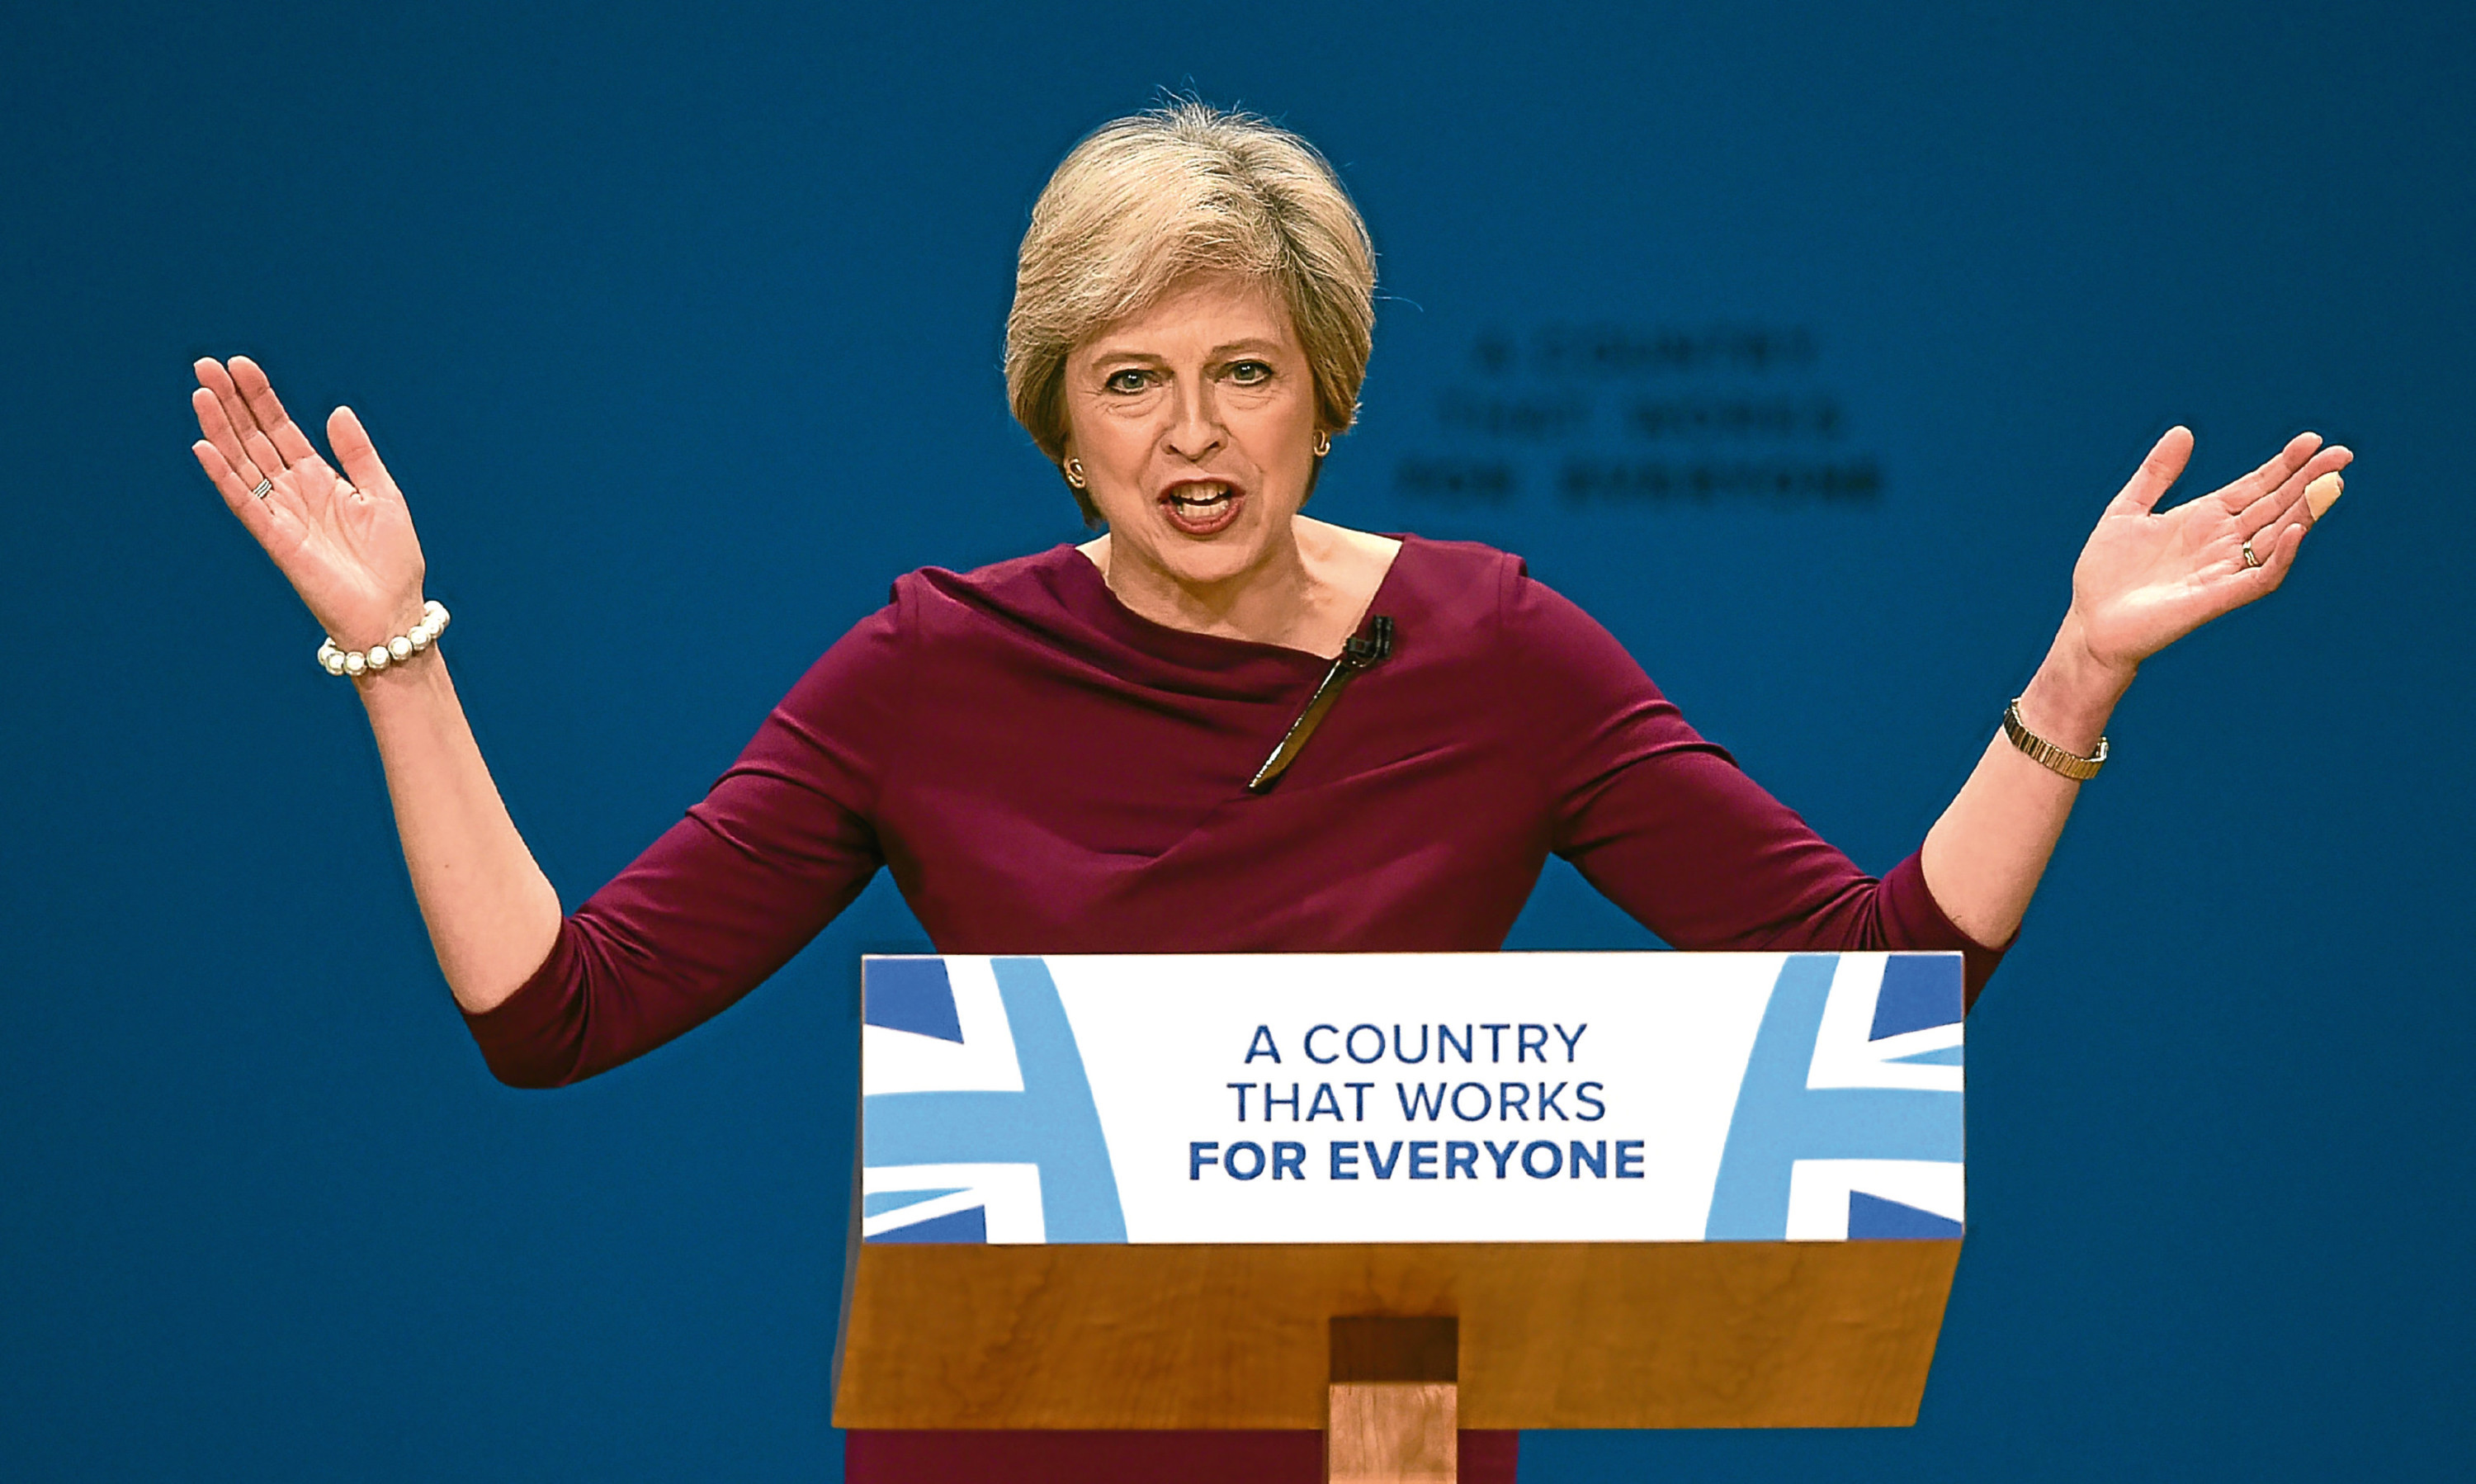 Prime Minister Theresa May speaking at the Conservative Party conference.